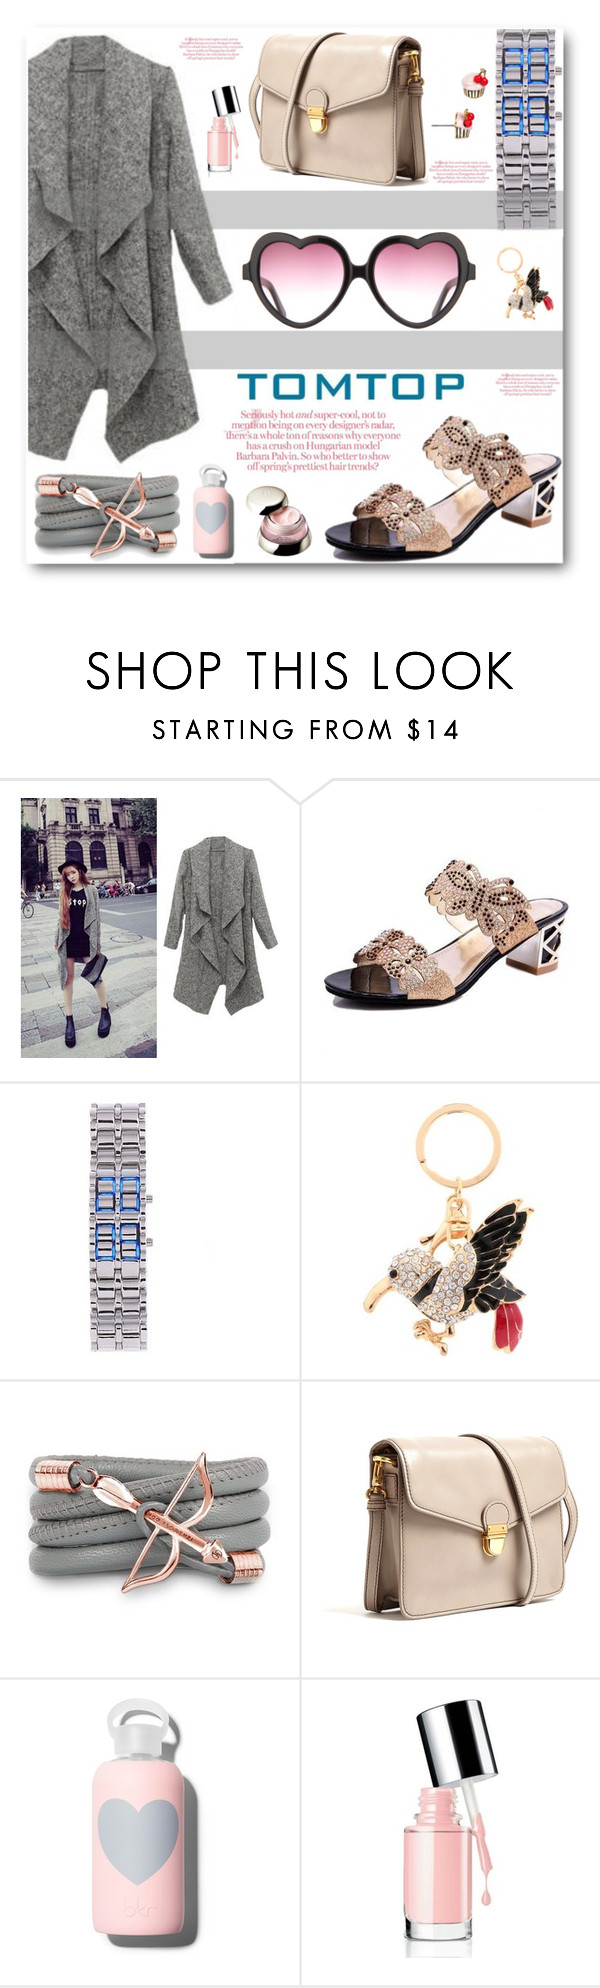 """TOMTOP"" by angelstar92 ❤ liked on Polyvore featuring Monza, Marc by Marc Jacobs, bkr, Kate Spade, Shiseido, tomtop and tomtopstyle"